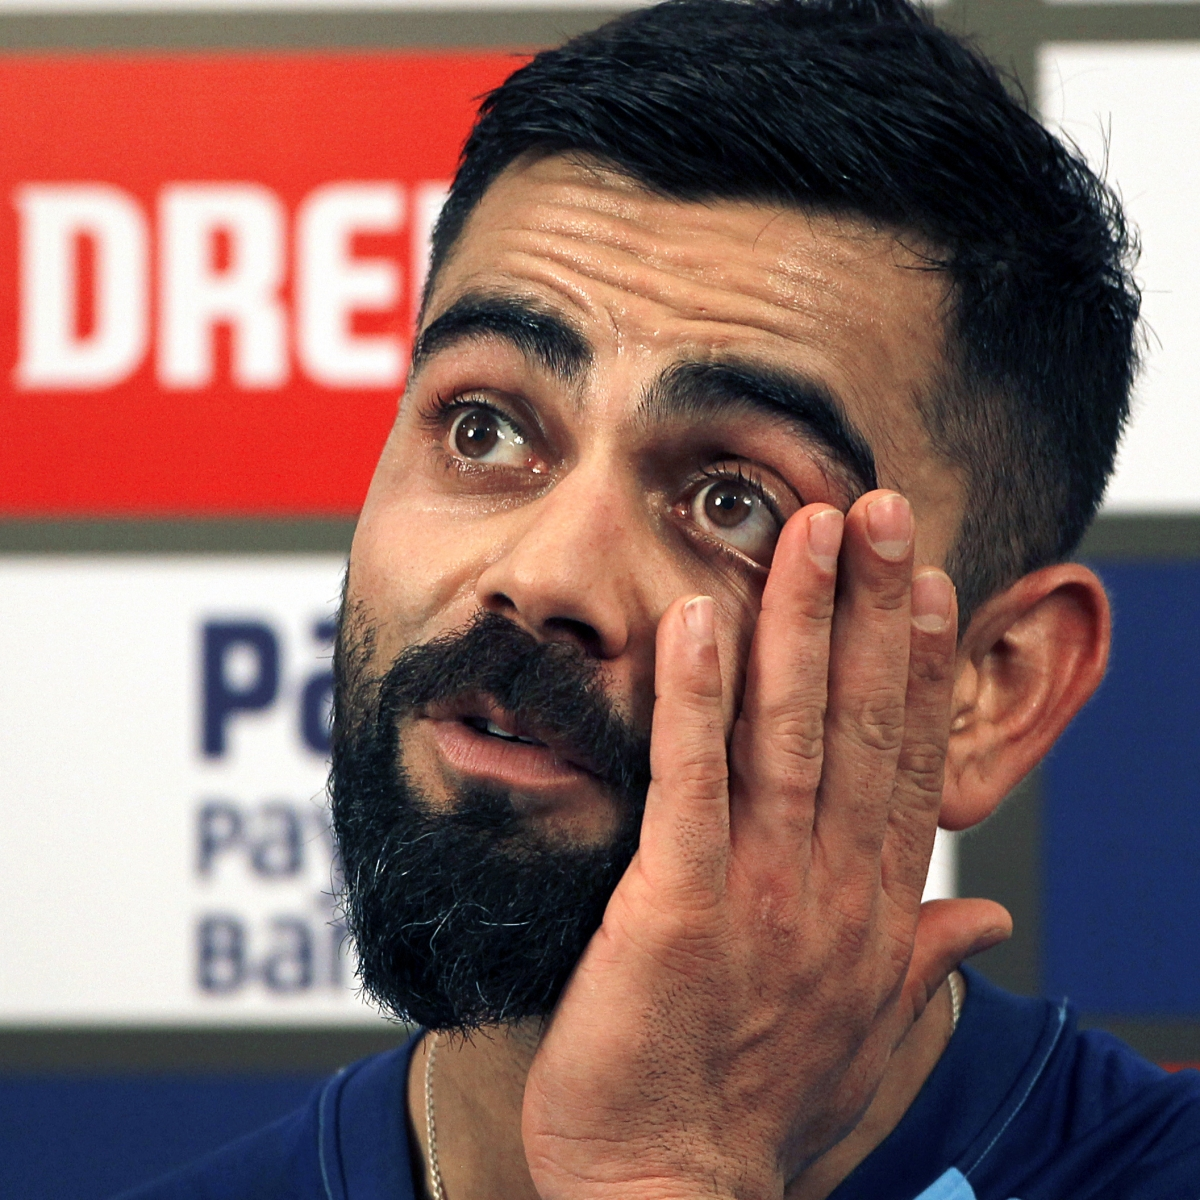 Kohli lauds Bumrah as most skilful bowler in world, after facing him in nets